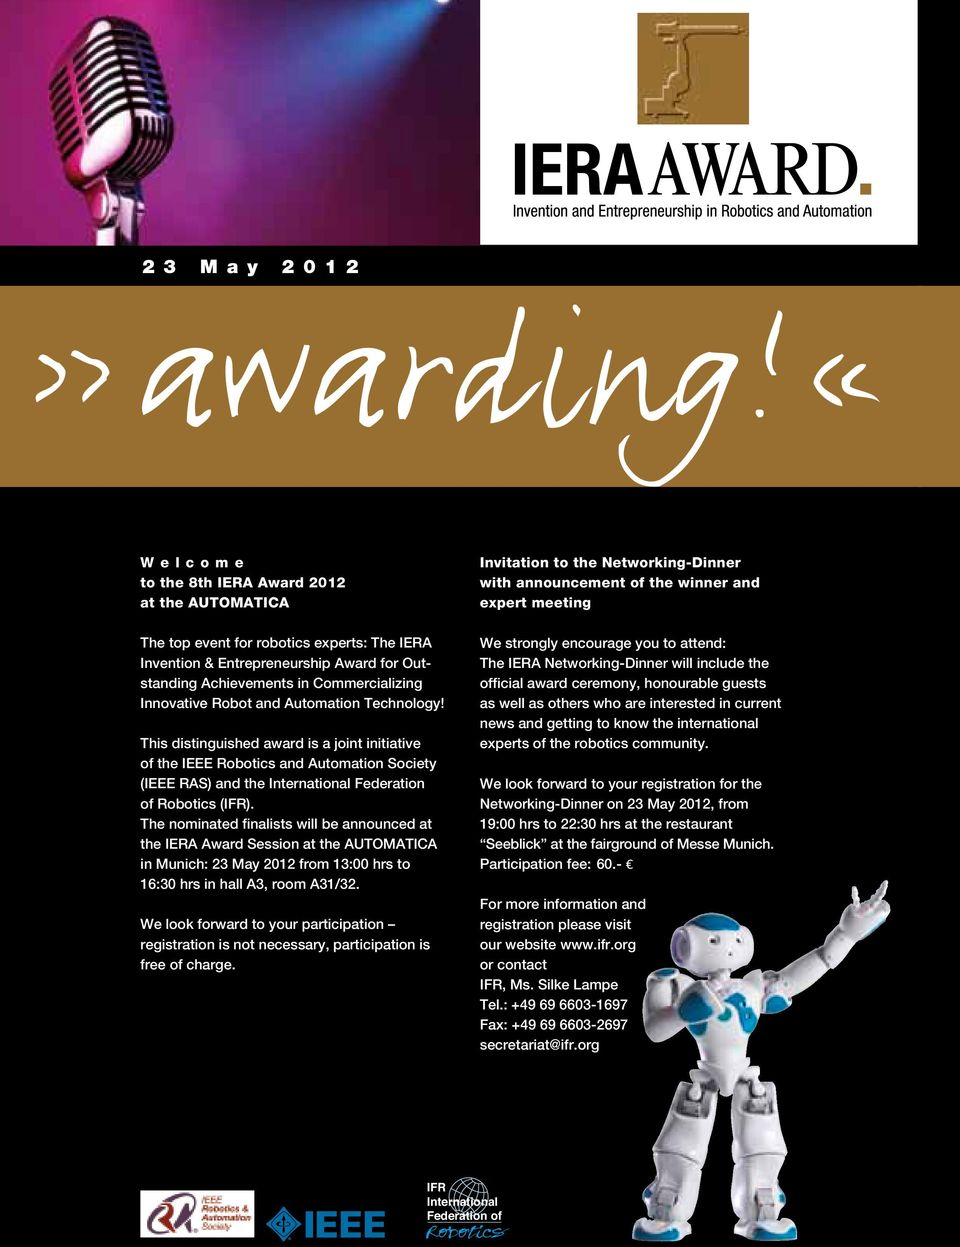 and Automation Technology! This distinguished award is a joint initiative of the IEEE Robotics and Automation Society (IEEE RAS) and the International Federation of Robotics (IFR).